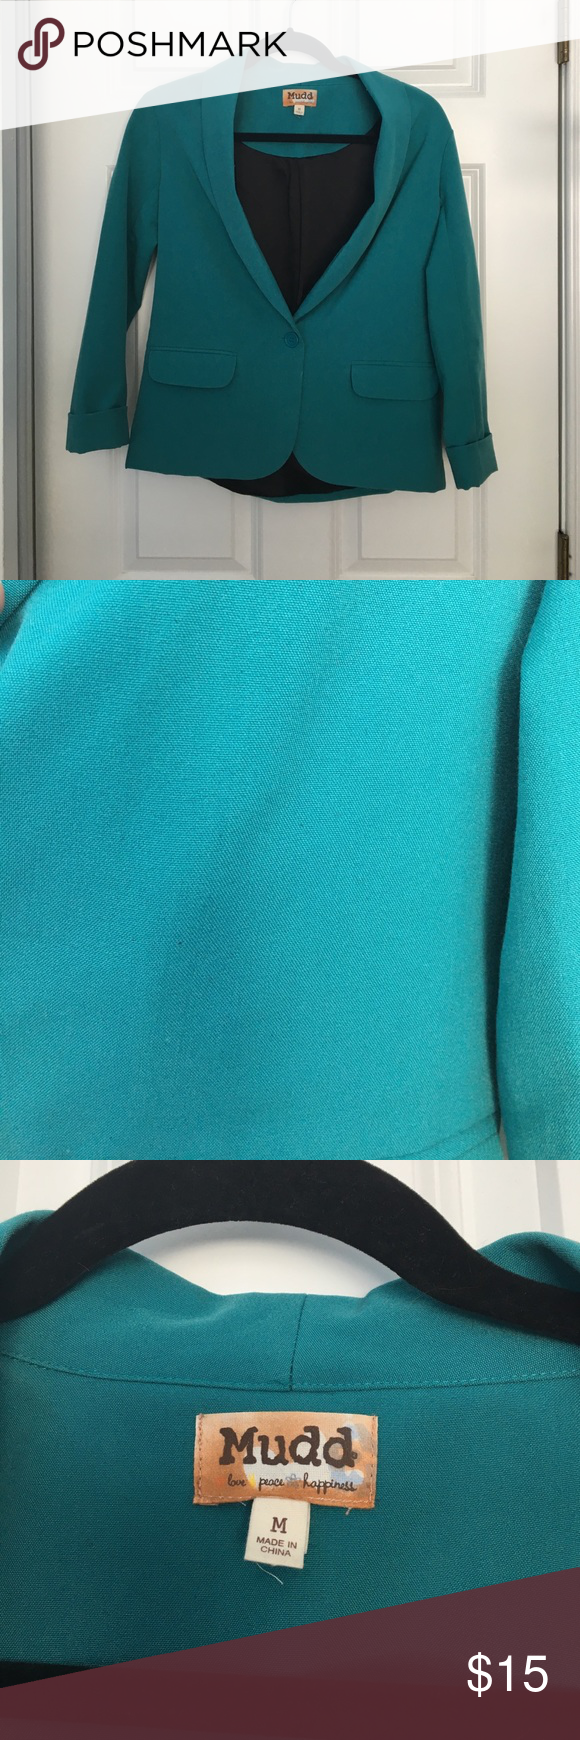 Teal blazer Teal blazer, great for dressing up jeans or to wear to work. Worn only 2-3 times Mudd Jackets & Coats Blazers